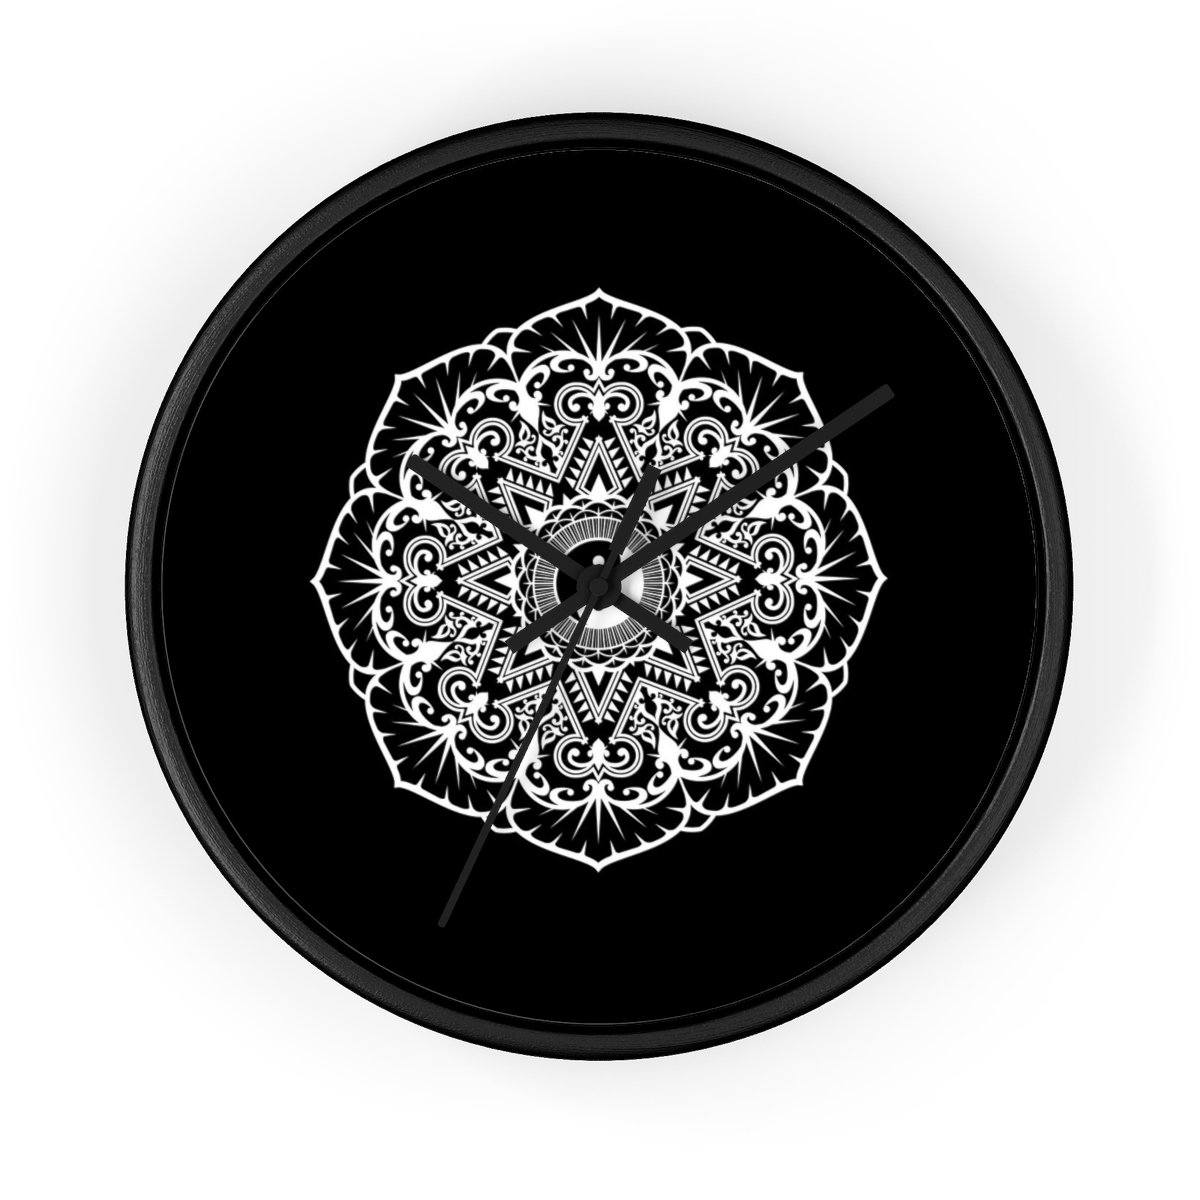 Mandala Black - Wall clock Wall Clock Printify 10 in Black Black